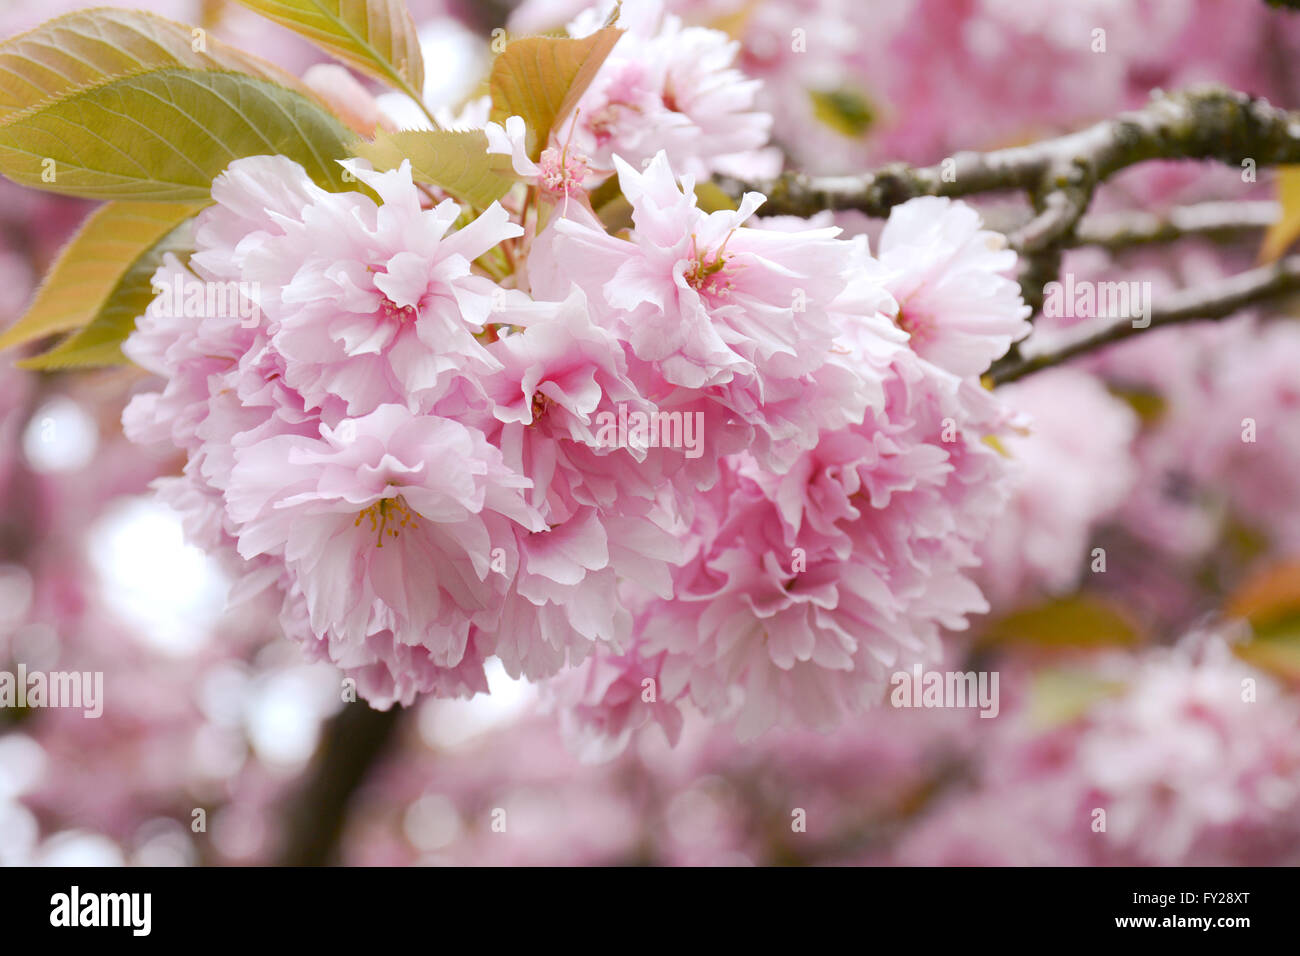 Prunus kwanzan stock photos prunus kwanzan stock images alamy fluffy pink cherry blossom flowers on branches on the tree in greater vancouver prunus mightylinksfo